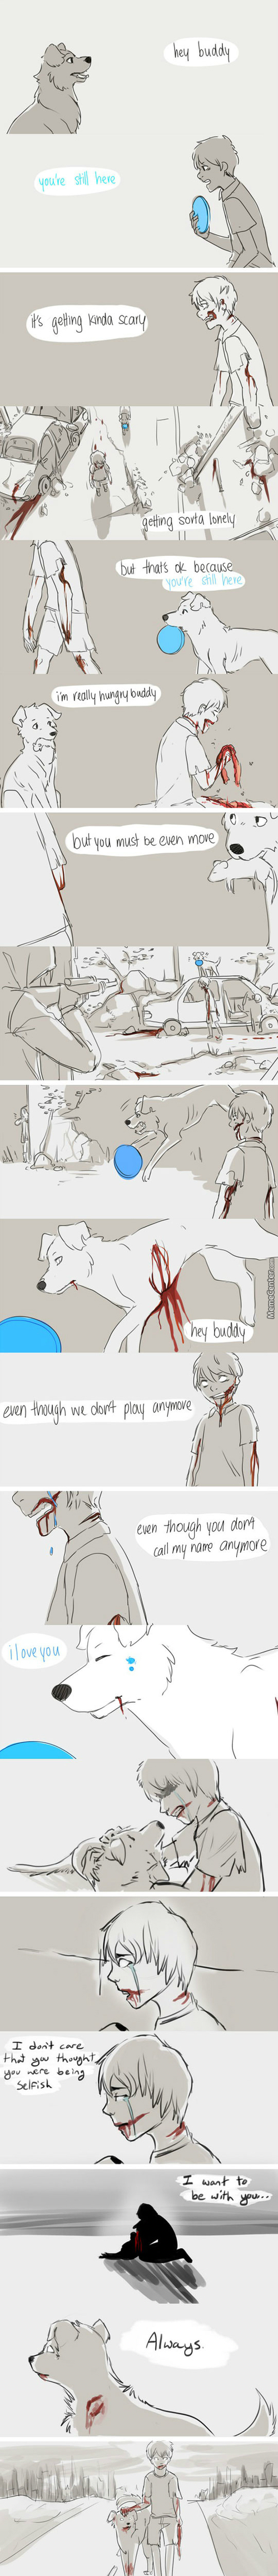 Zombies Have Feelings Too You Know